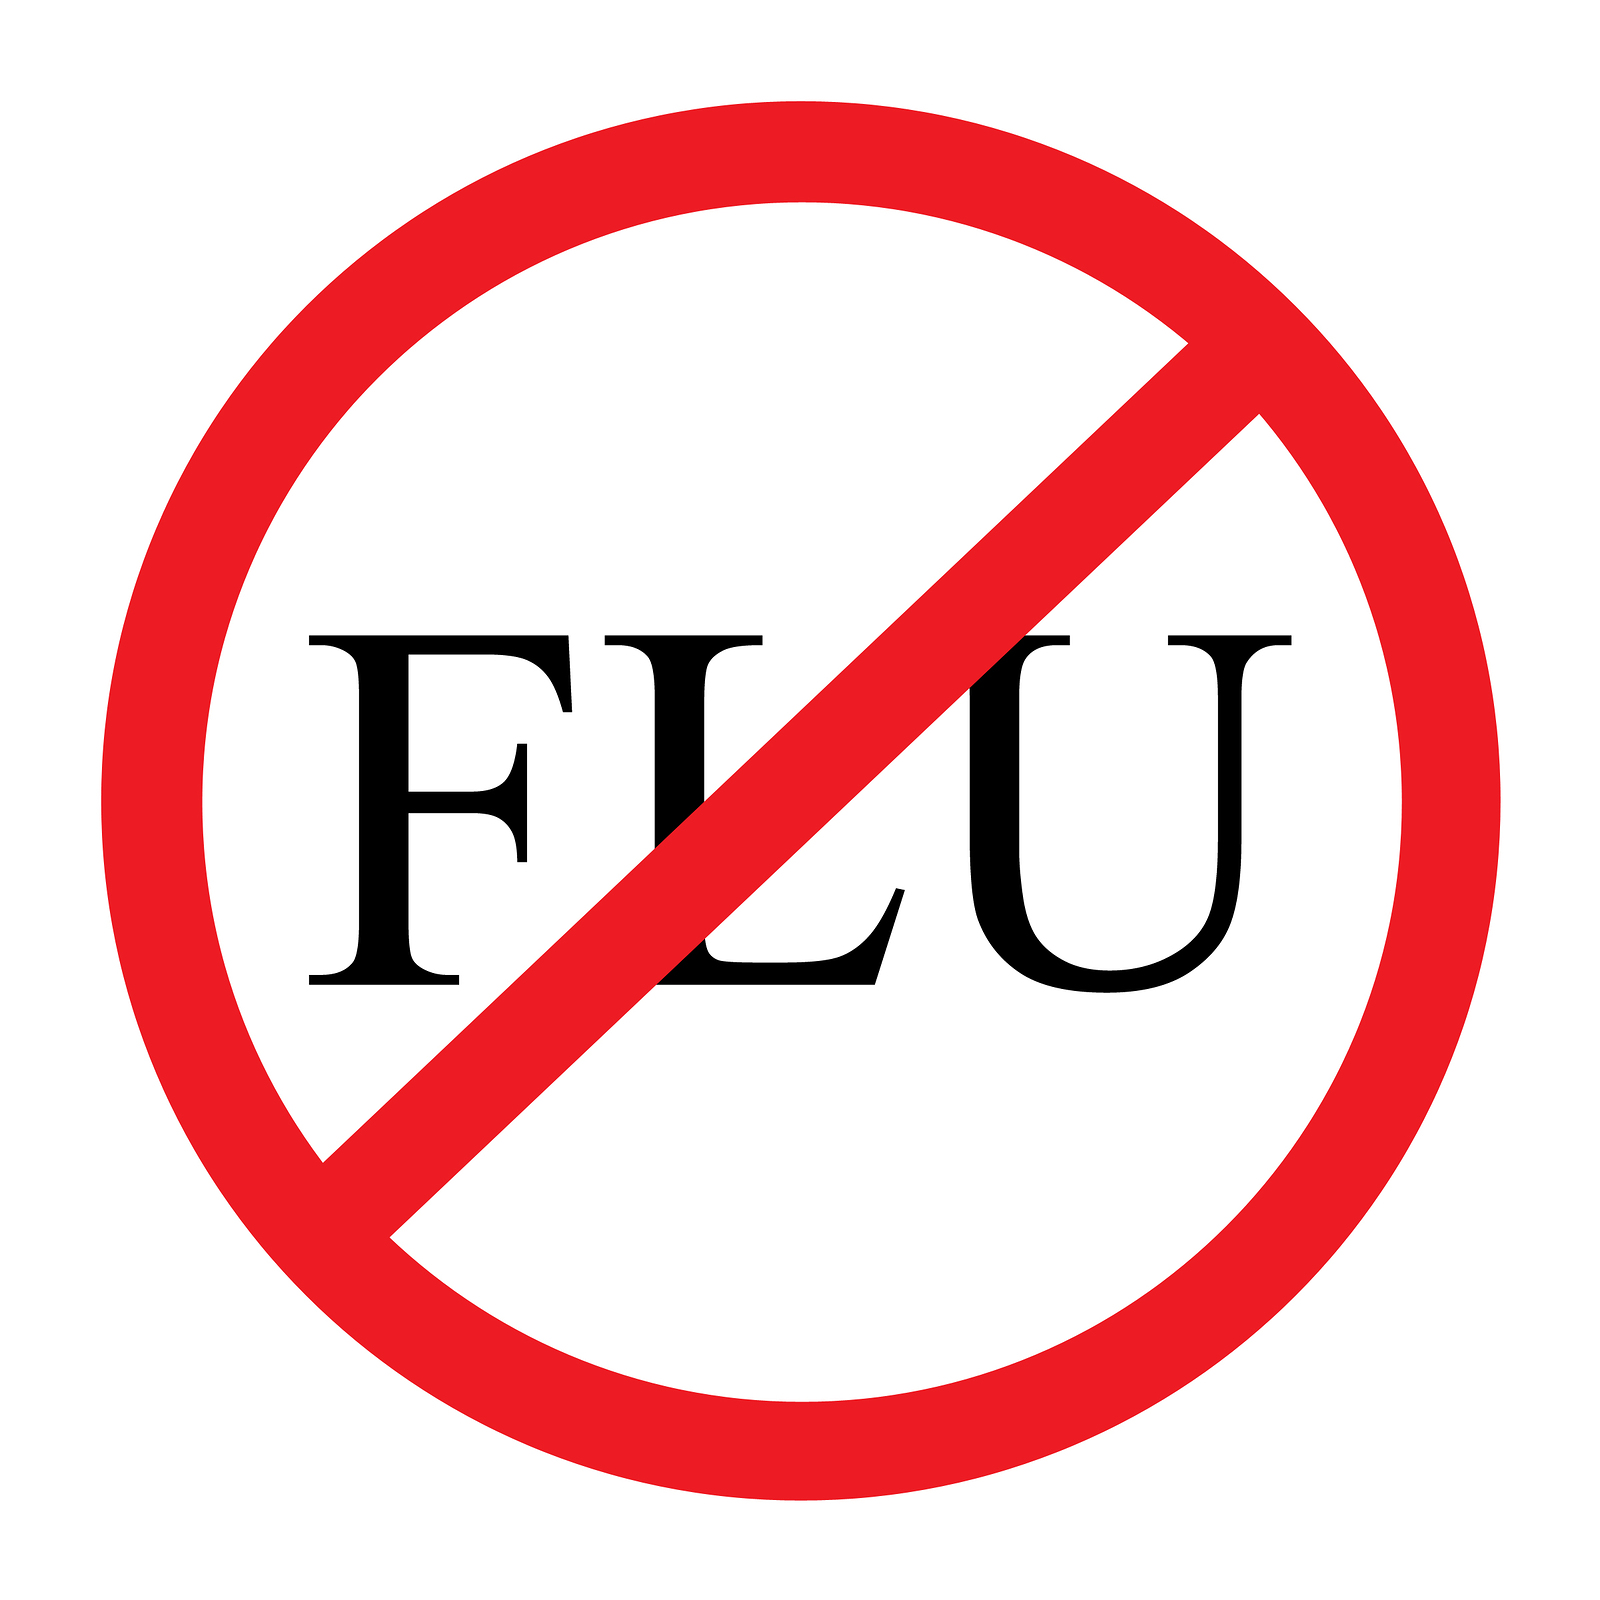 Flu shot info & tips